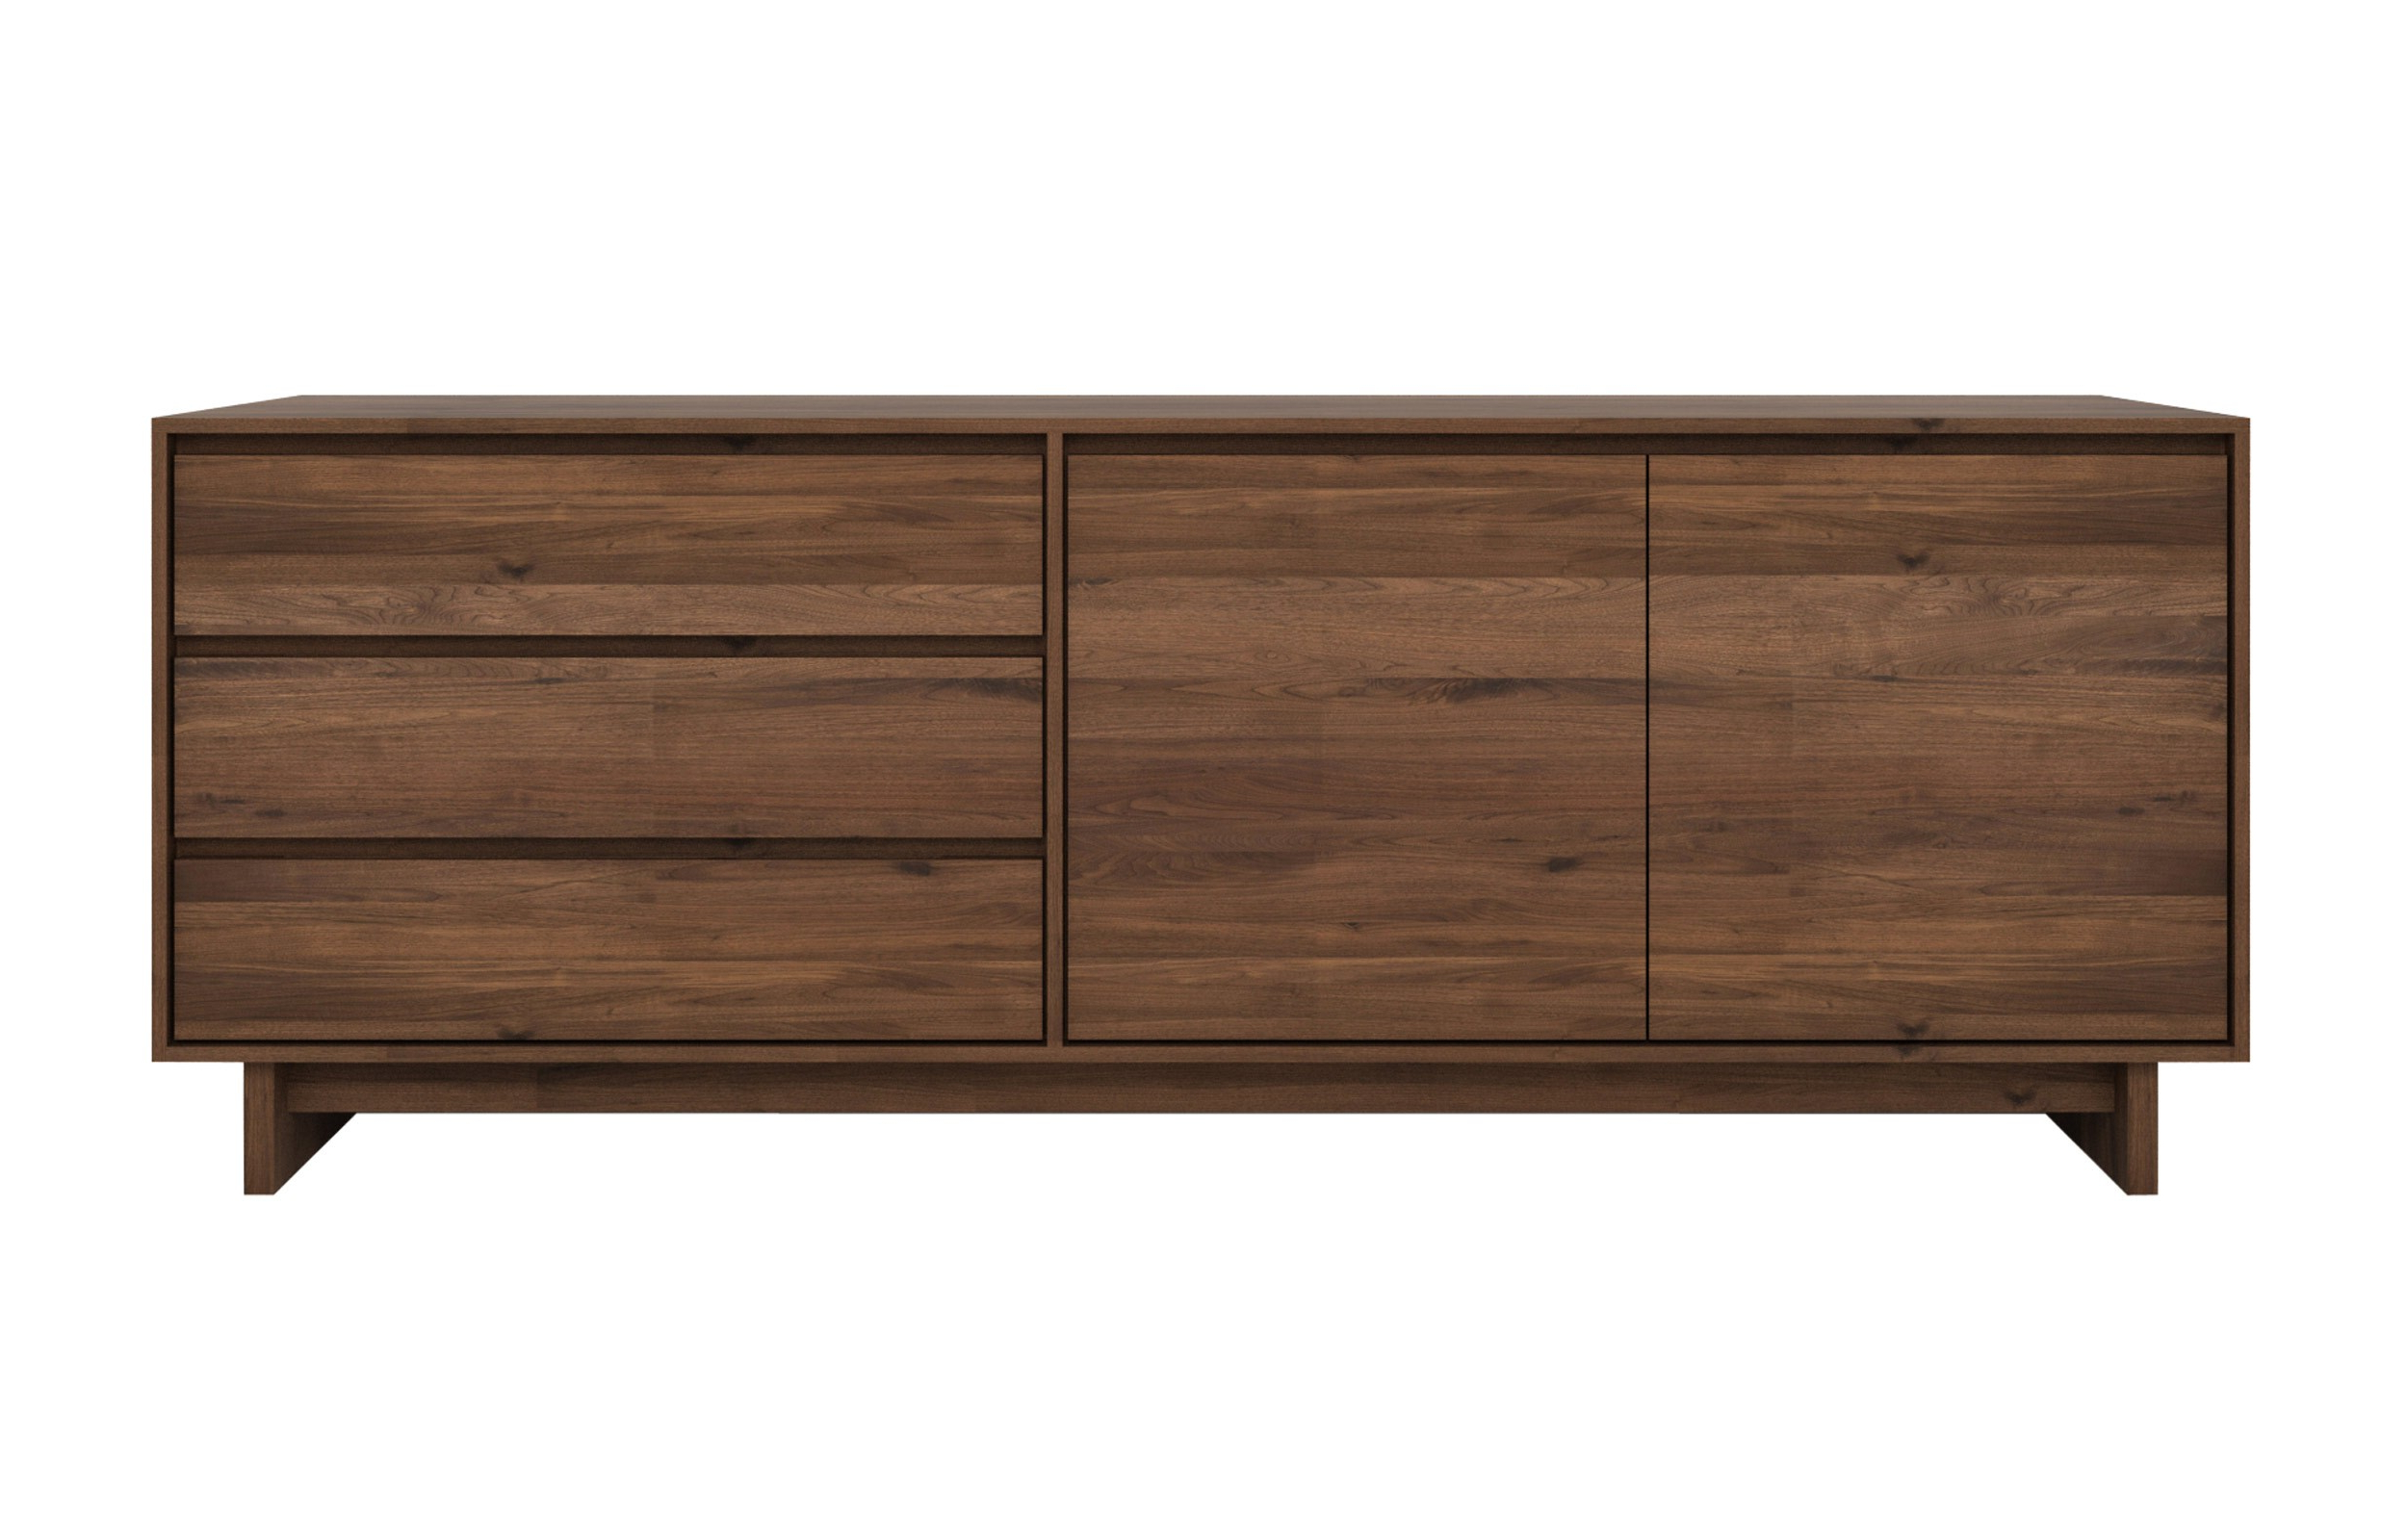 Walnut Finish 4 Door Sideboards Throughout Newest Wave Walnut Sideboard (View 17 of 20)